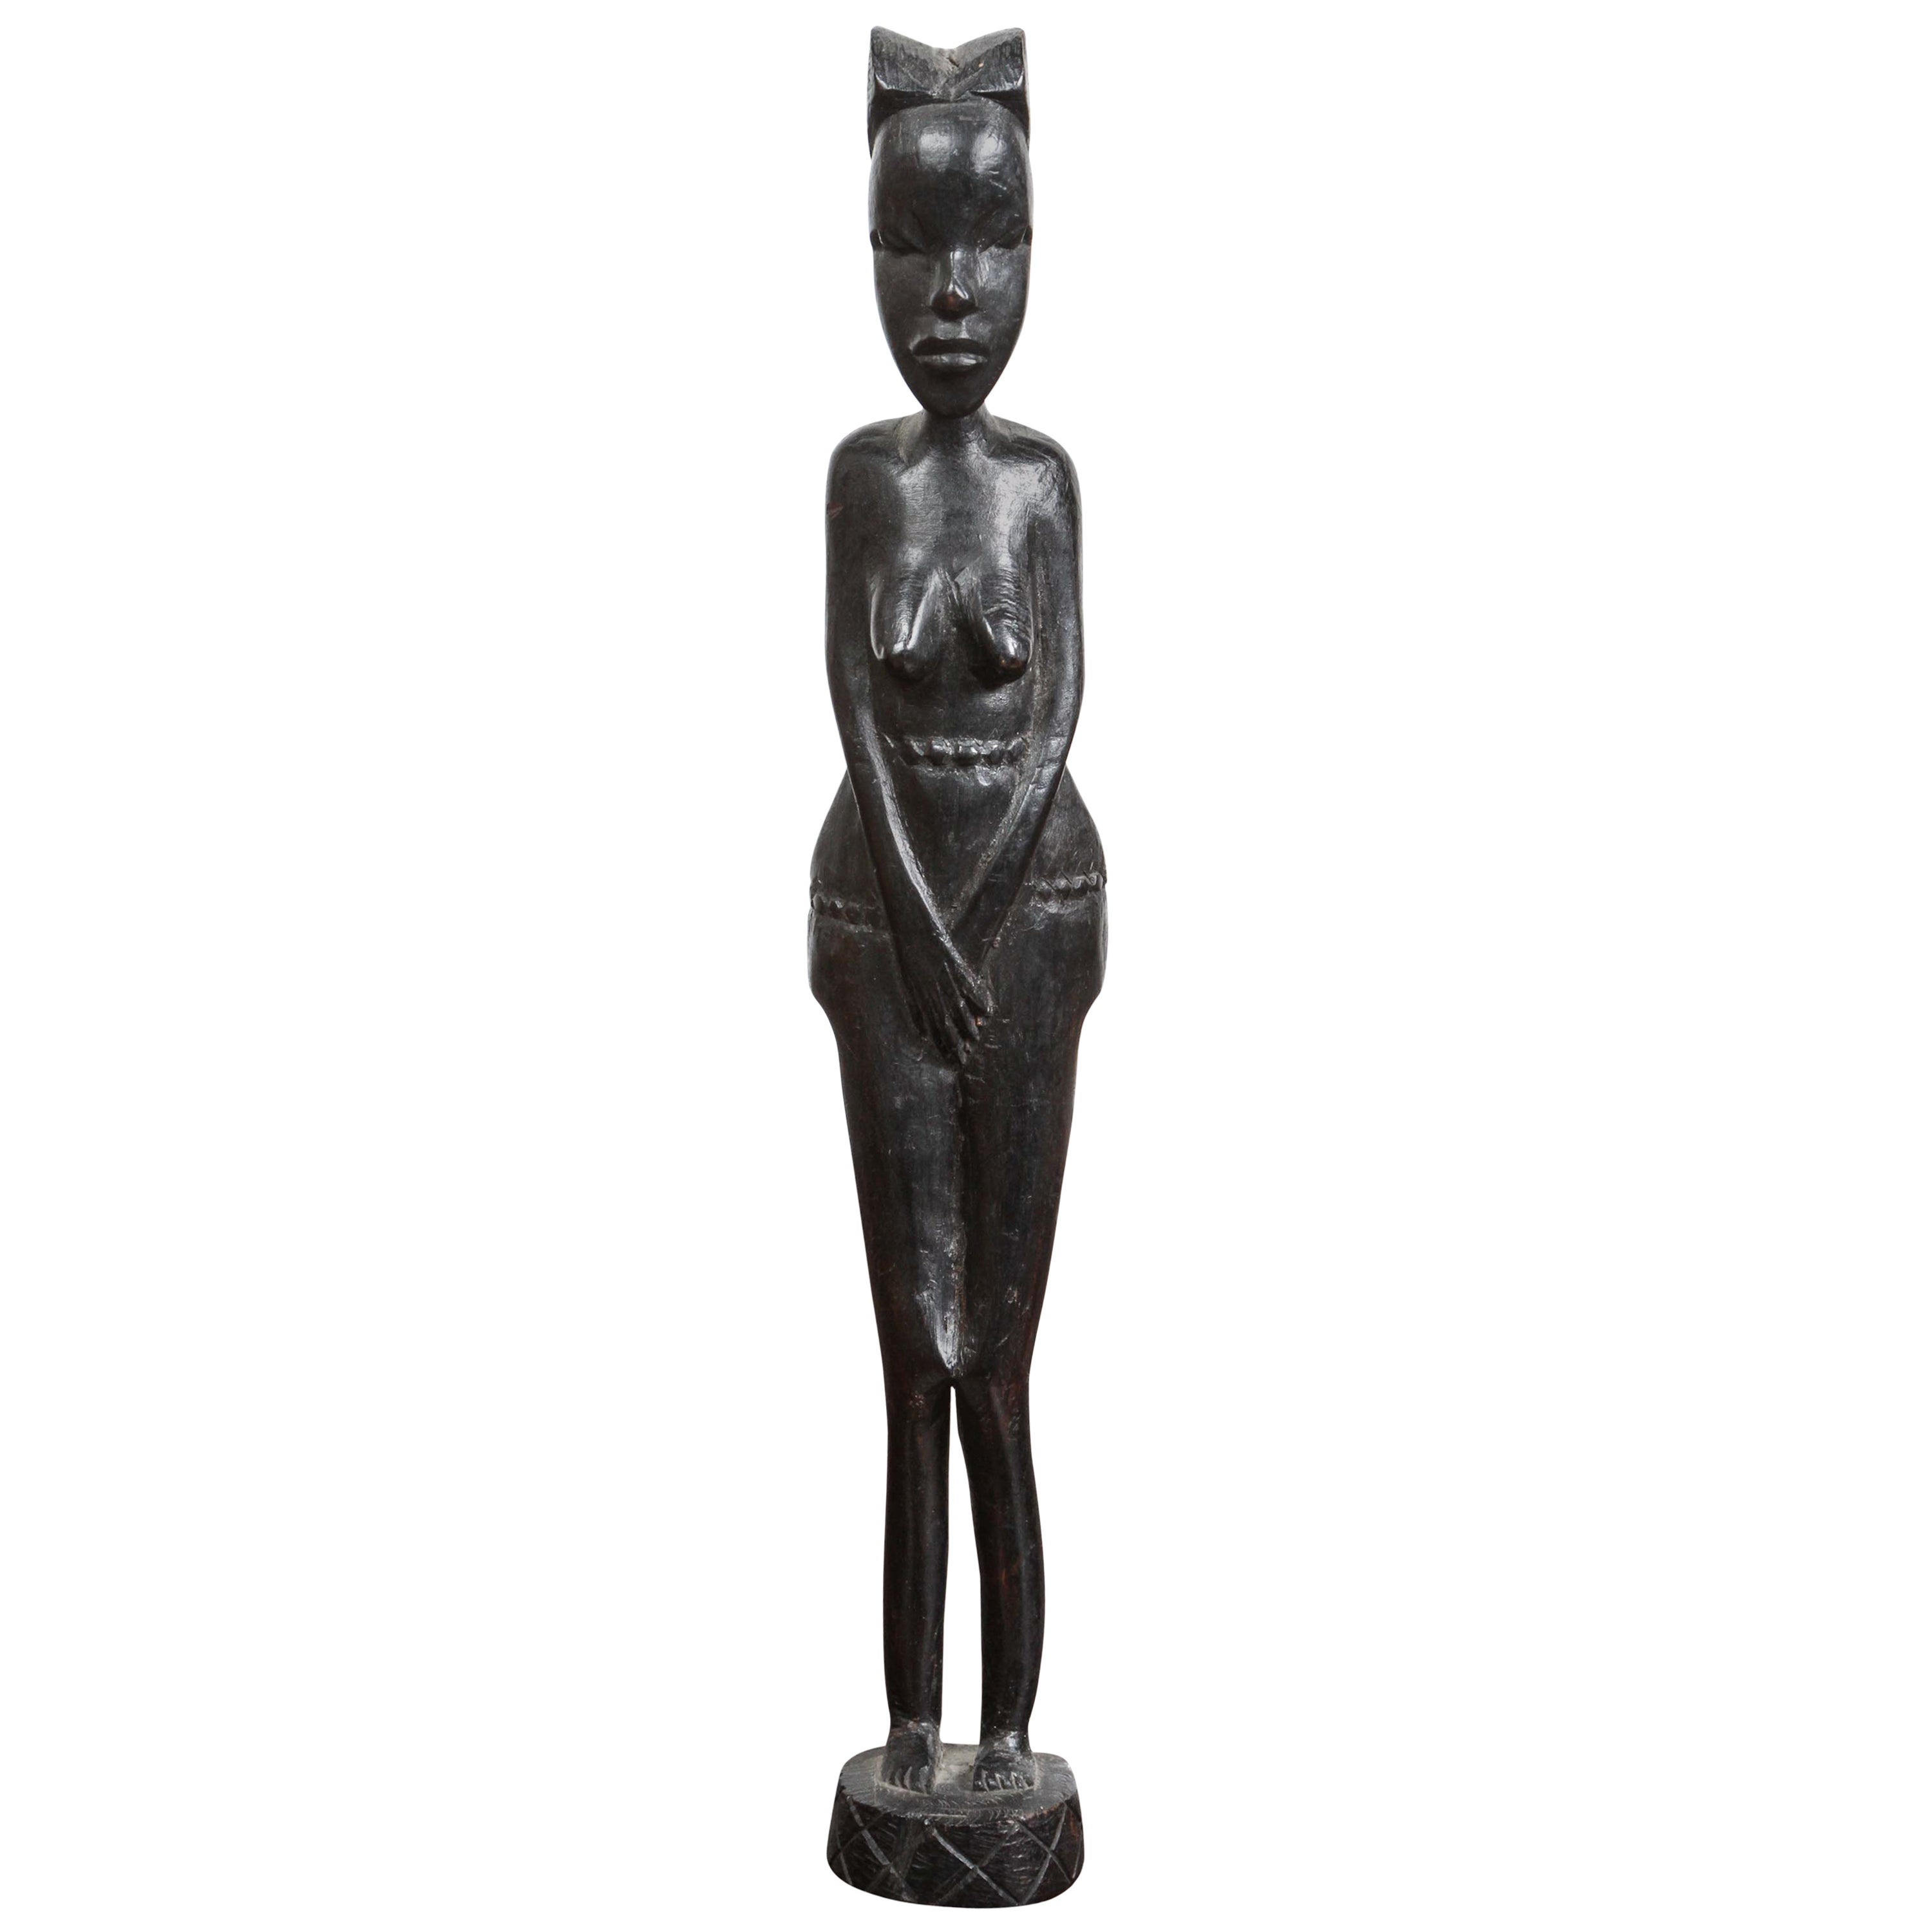 Decorative Hand-Carved African Statue from Kenya